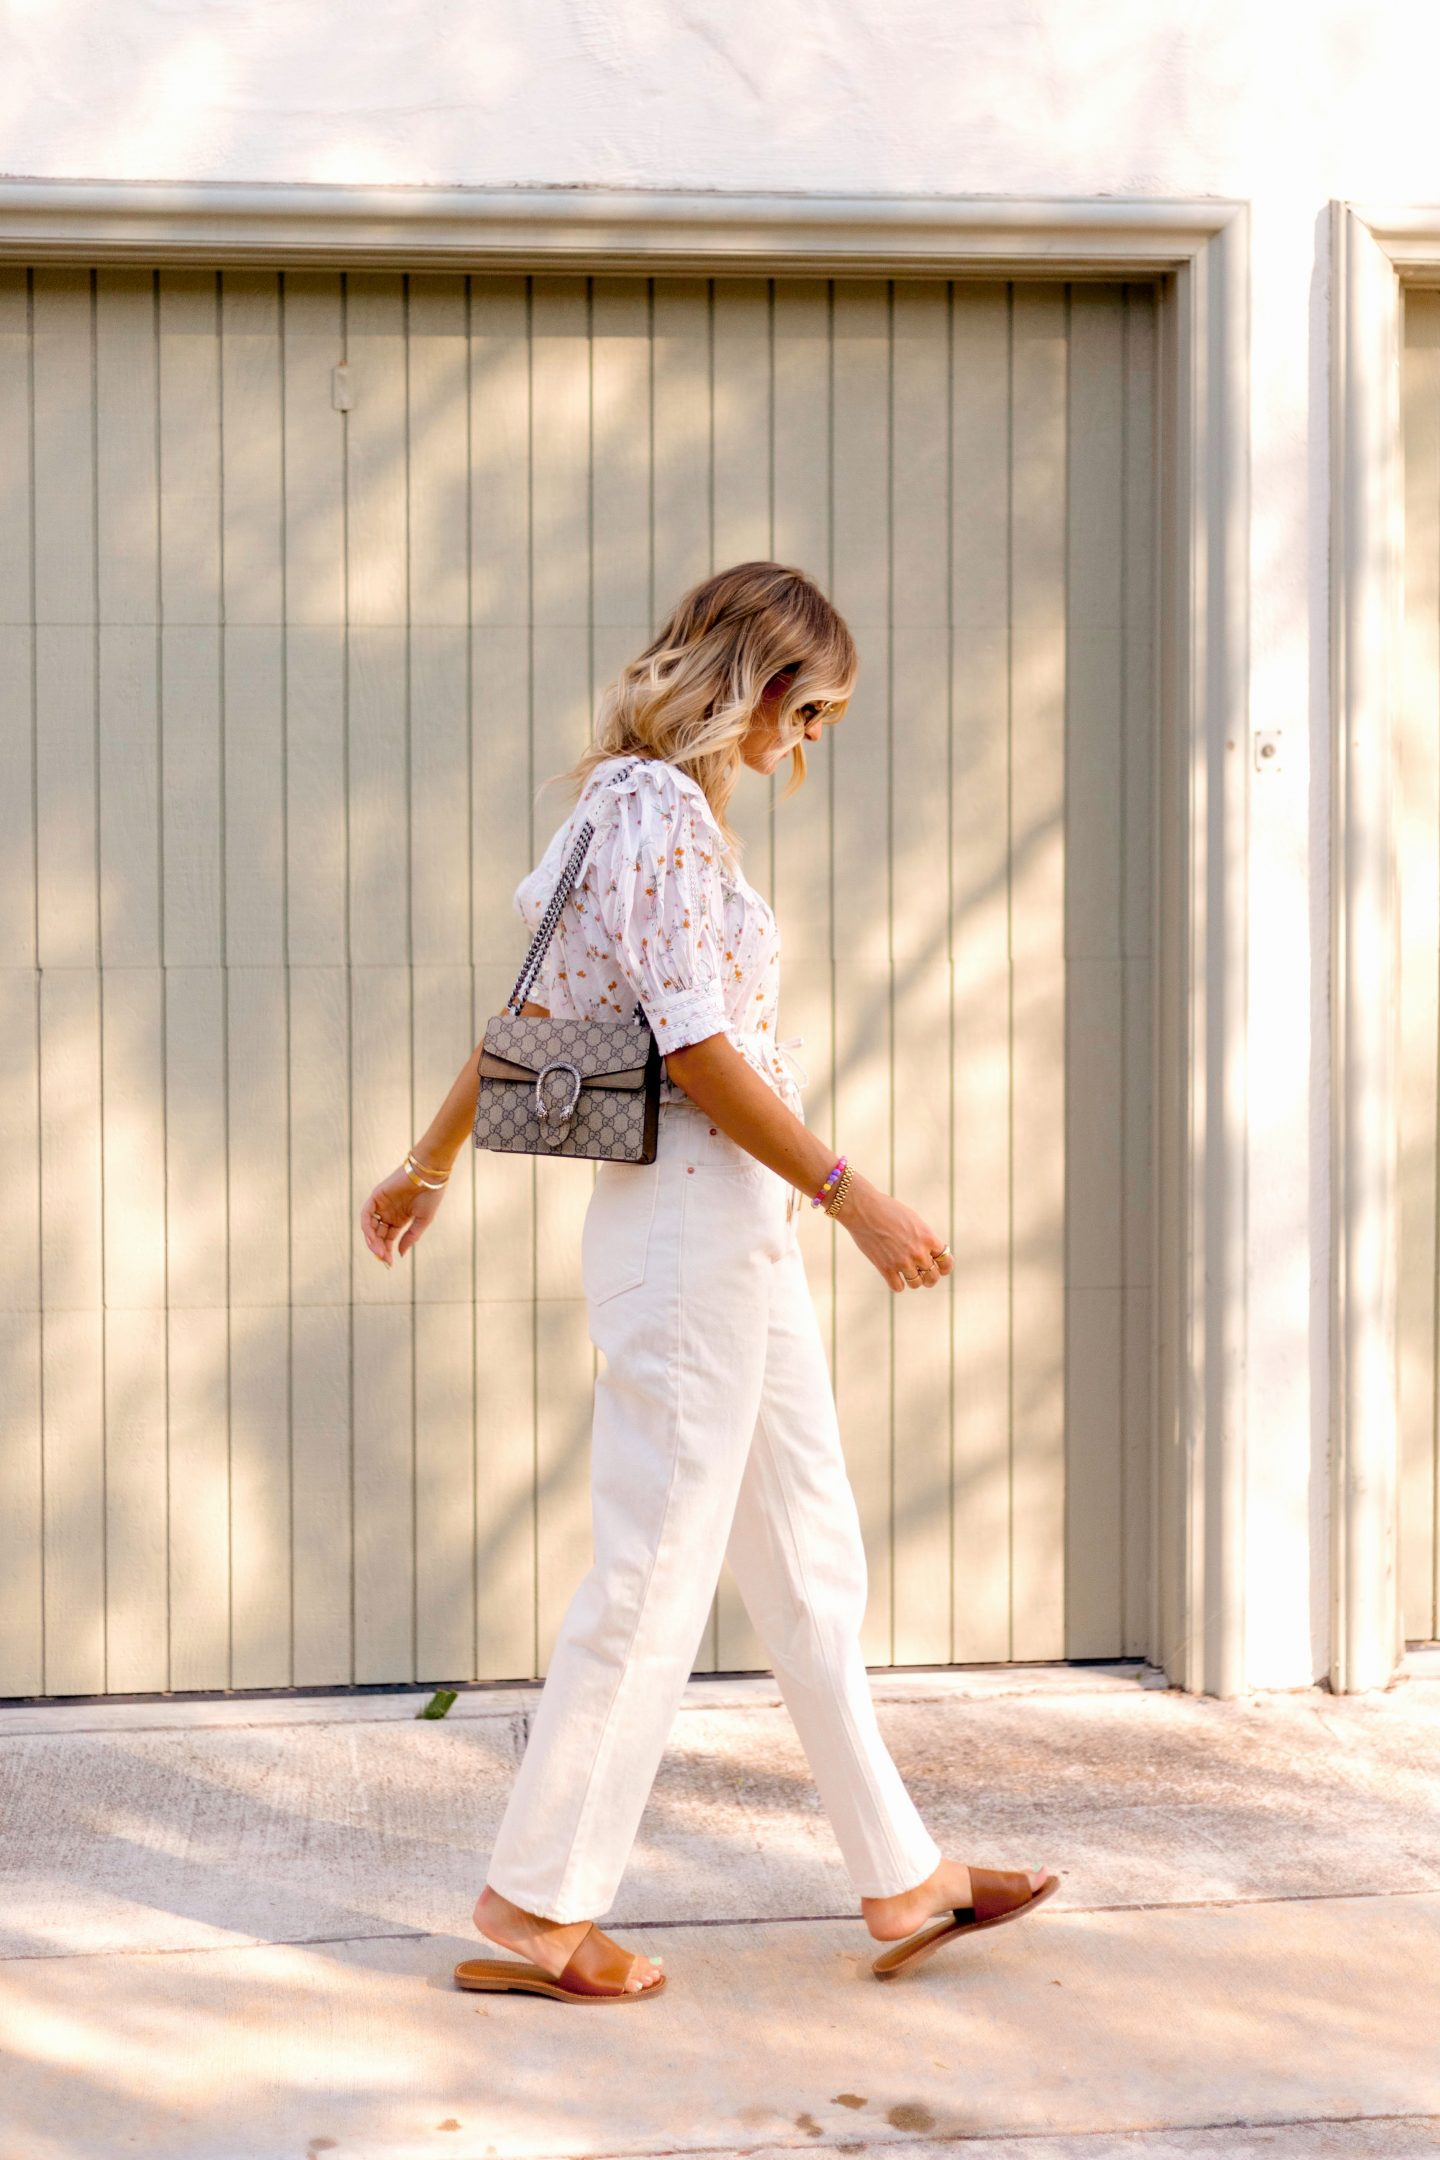 woman wearing printed top and white pants